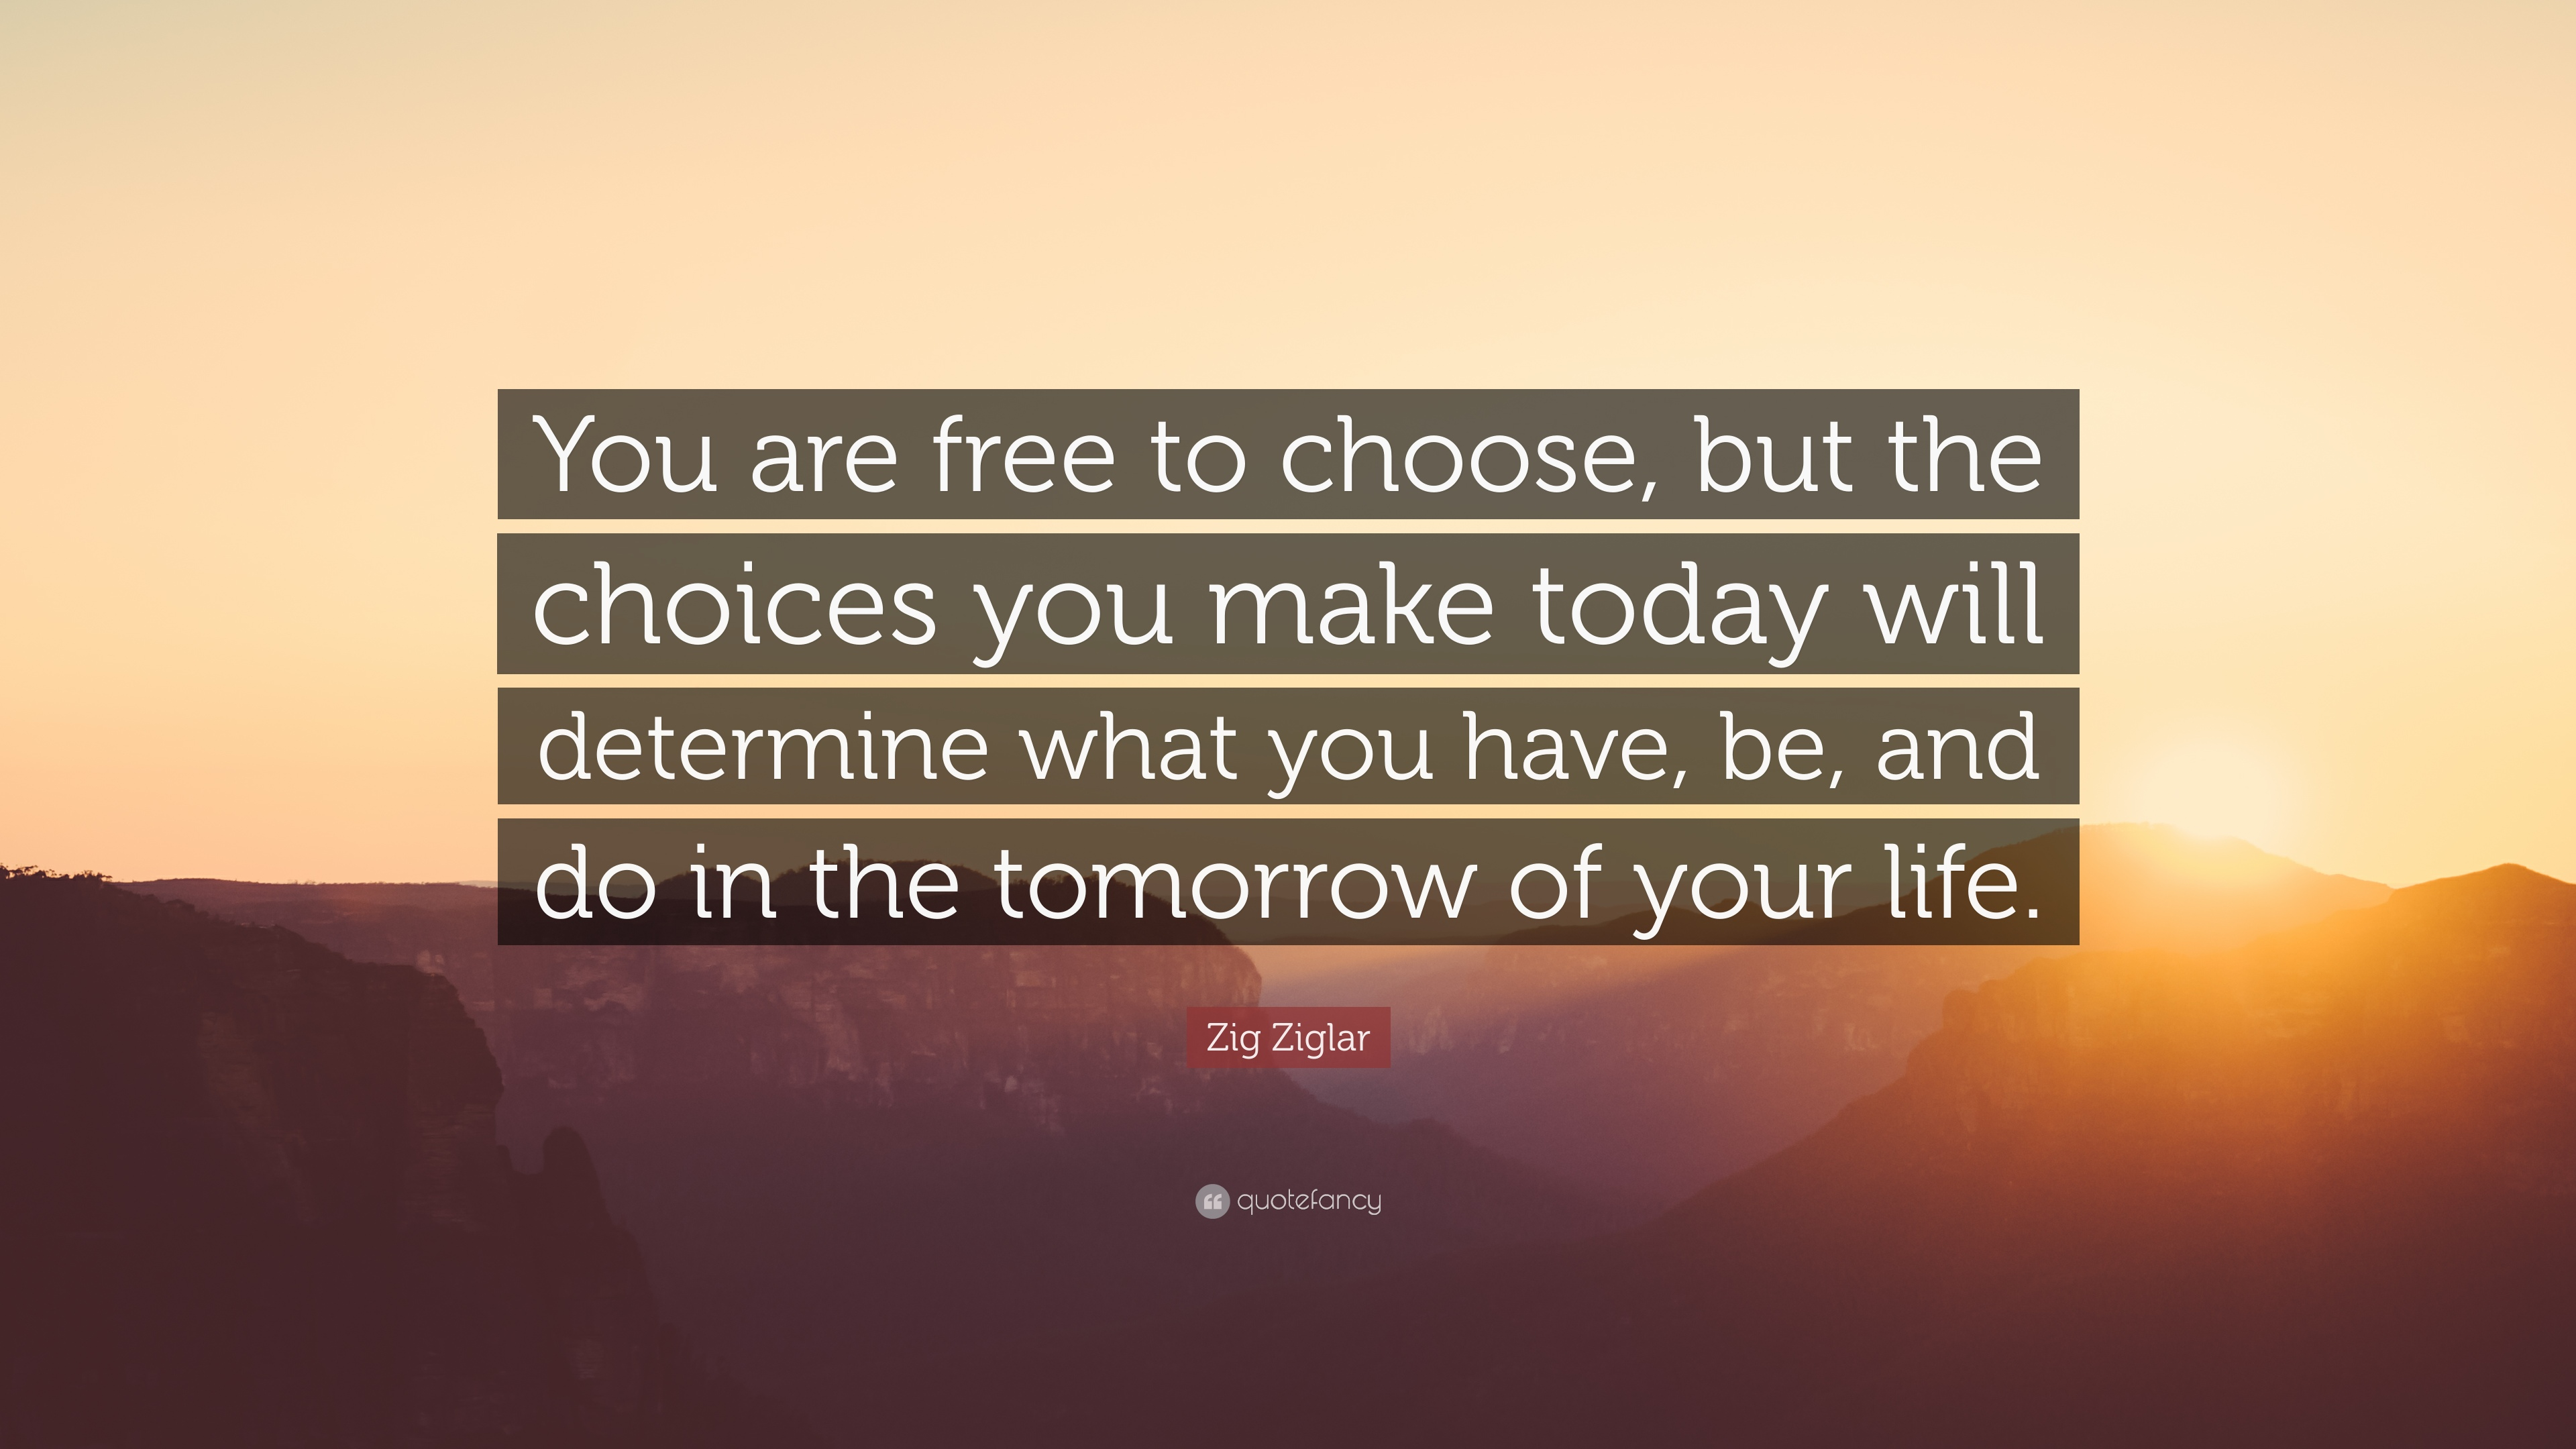 The Choice Quotes Choices Quotes 40 Wallpapers  Quotefancy